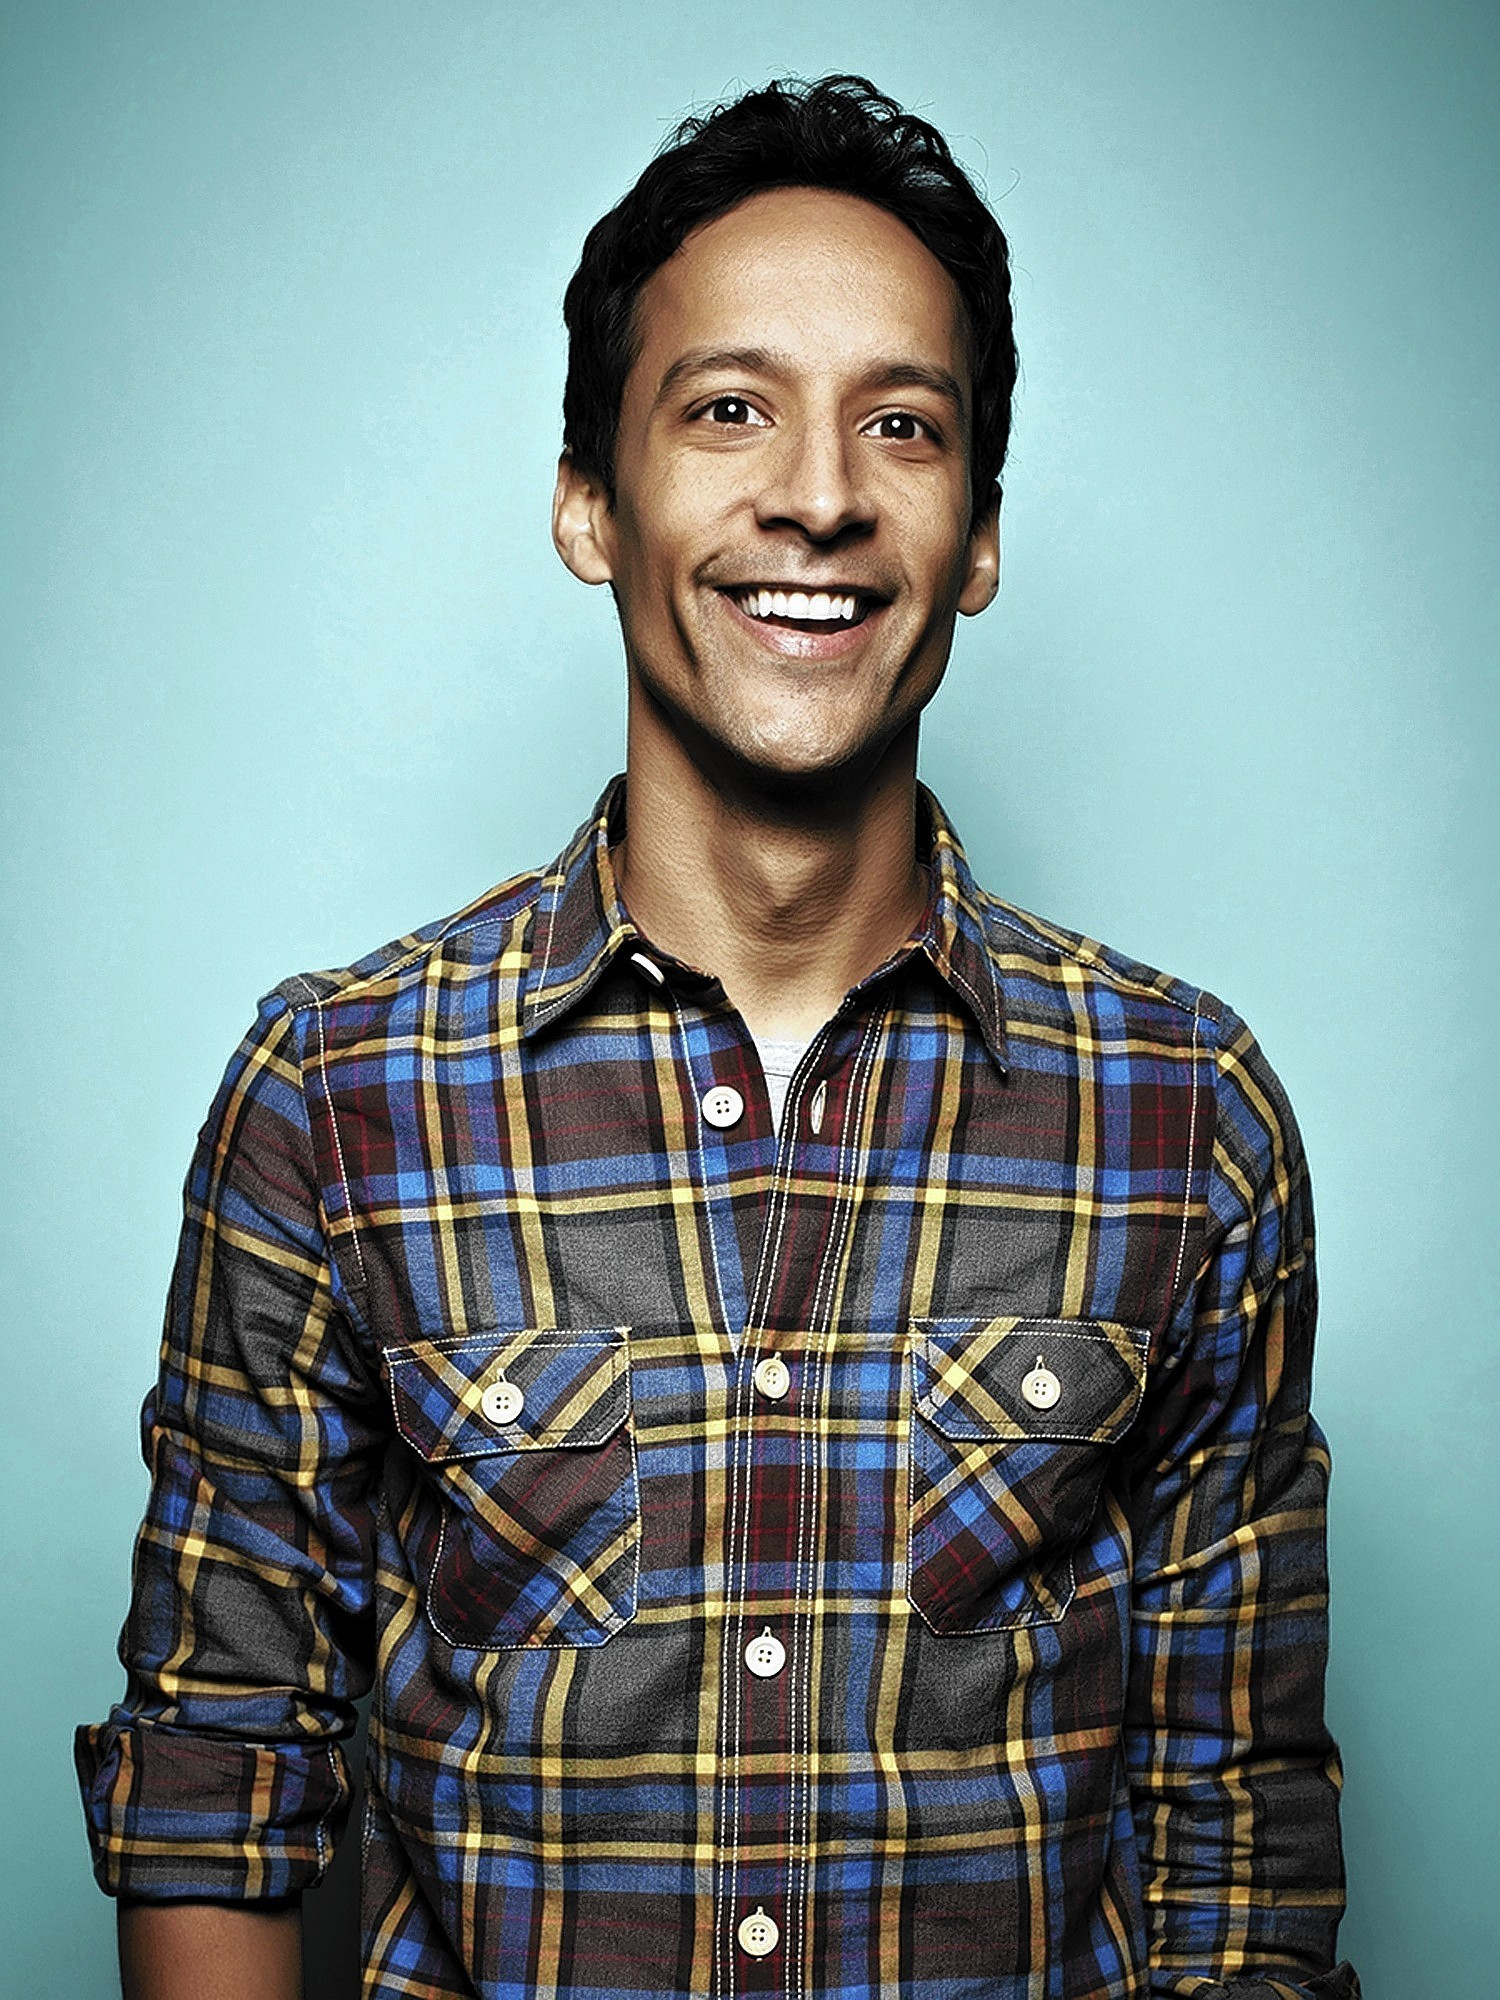 Danny Pudi - Fresh Off The Boat is a show about a Taiwanese immigrant family. Danny is an Indian American actor who is not Taiwanese. It's weird enough they have Randall Park play the dad, since he's Korean and not Taiwanese.